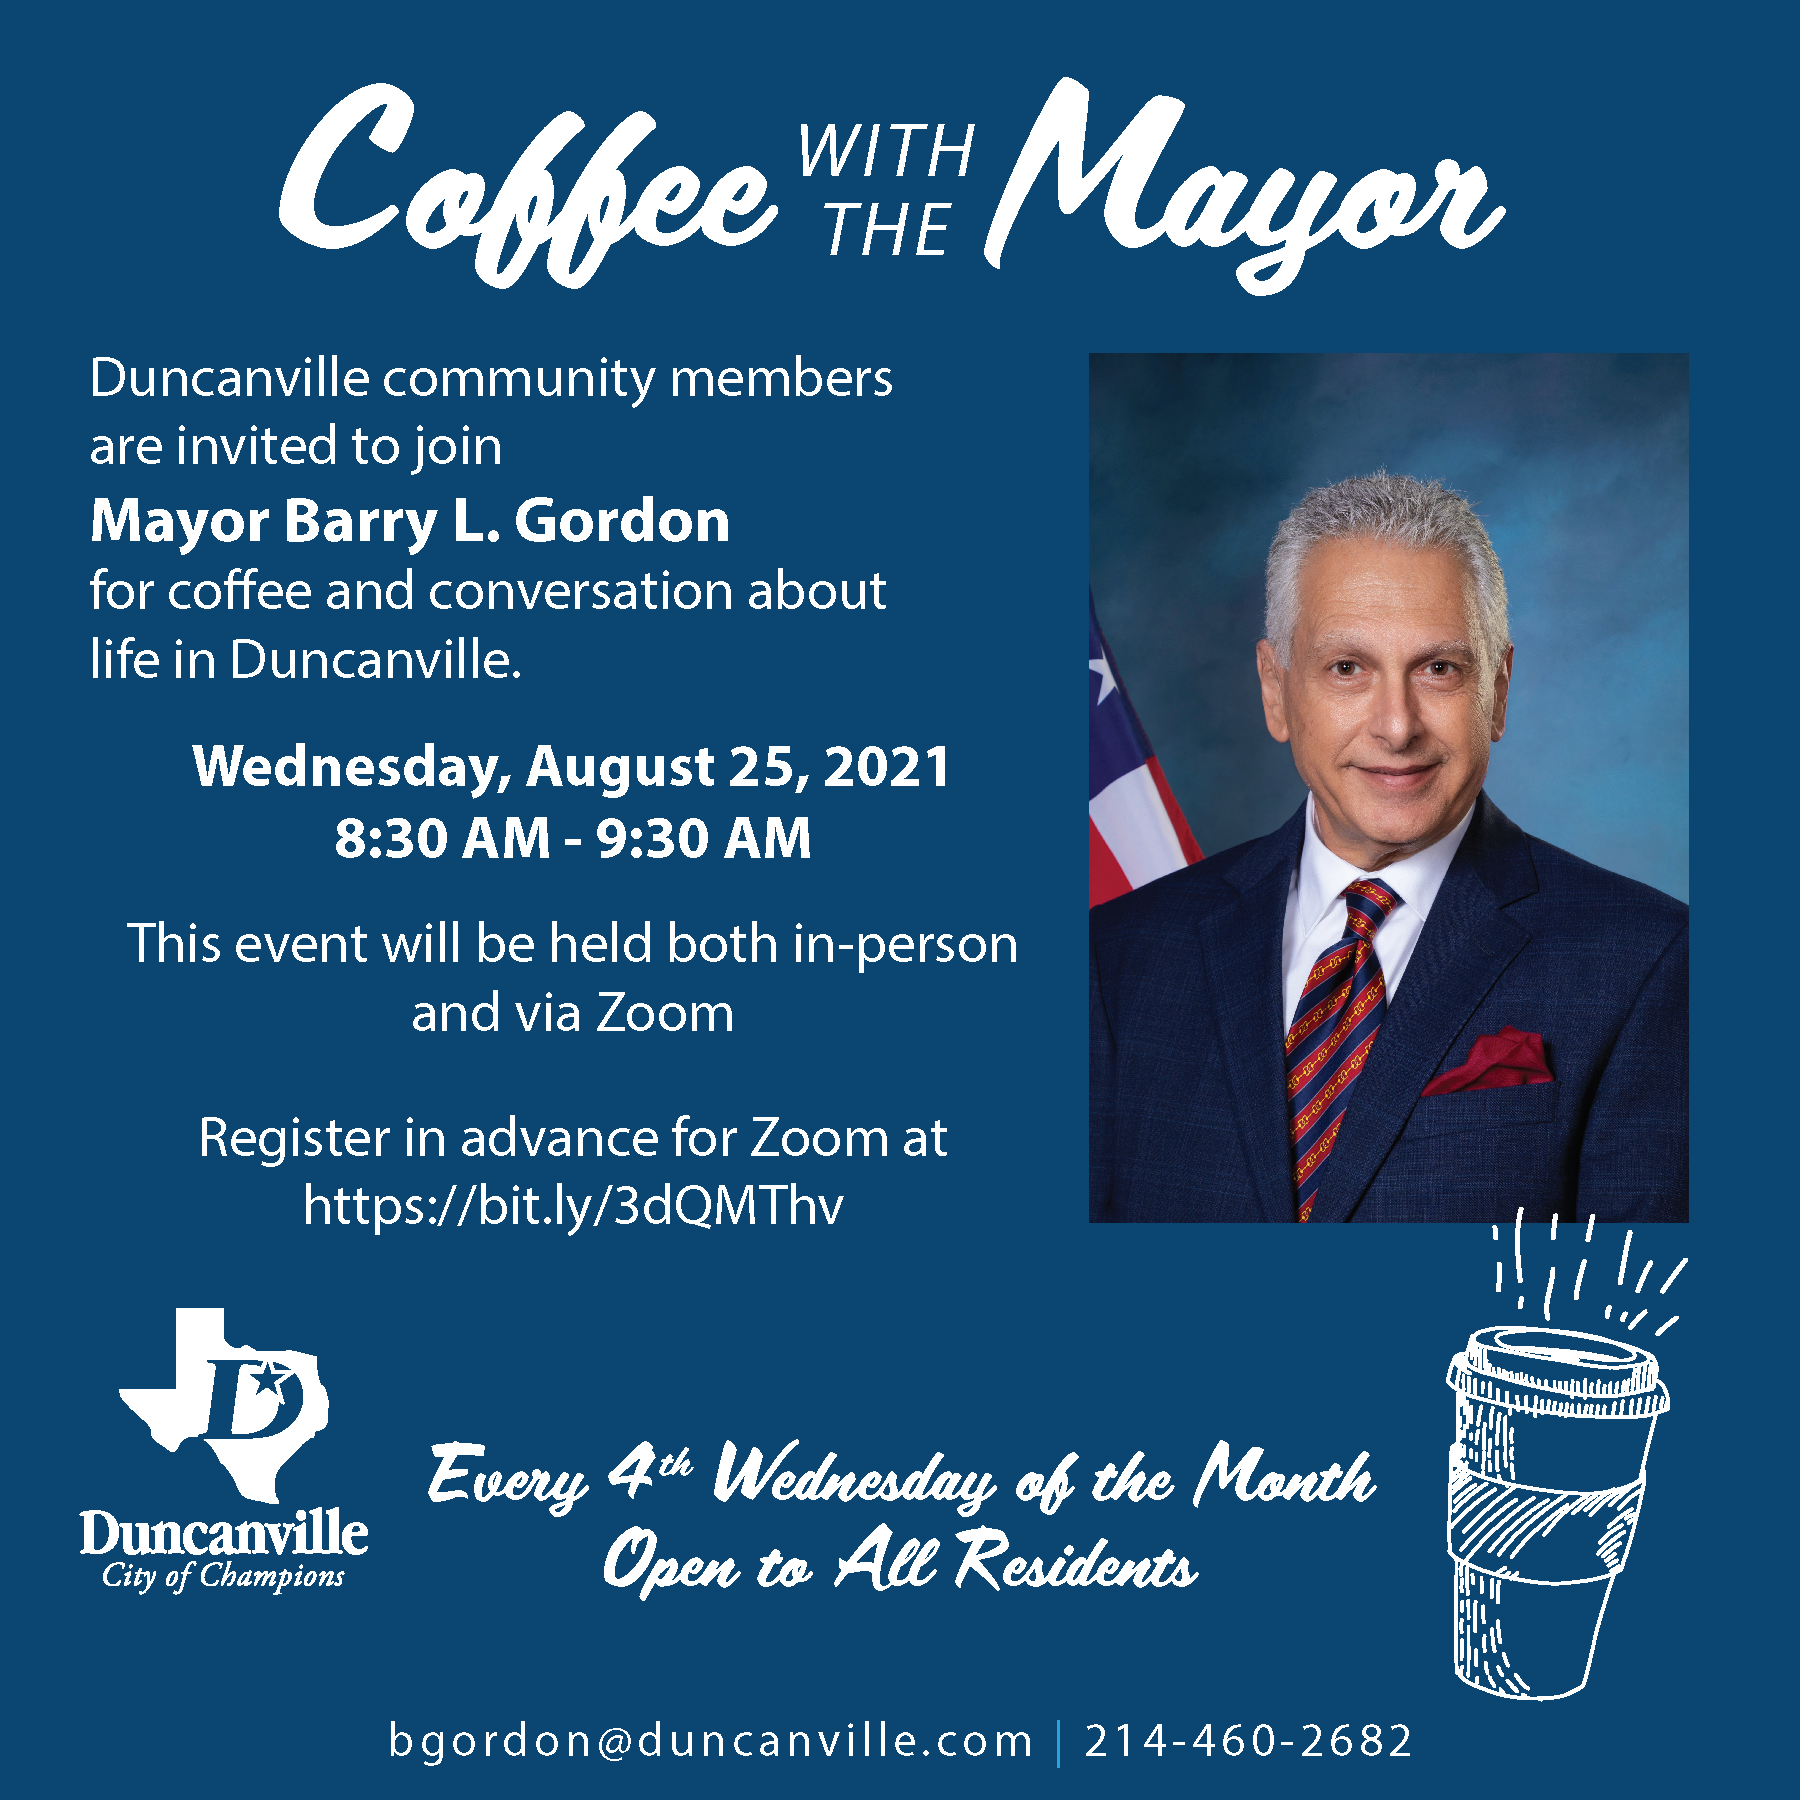 Coffee with the Mayor for August 25, 2021